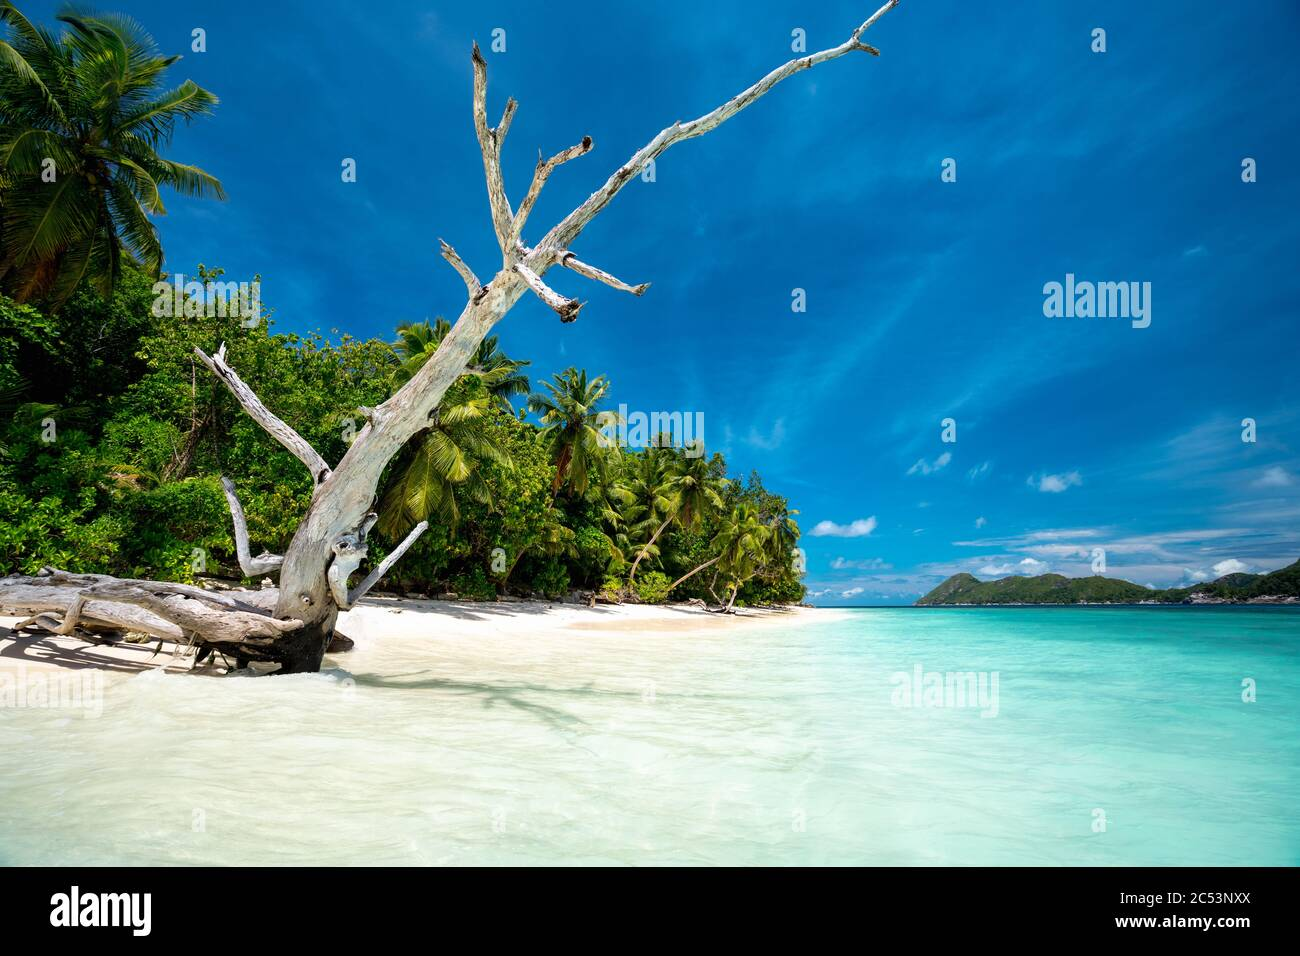 Surreal view with dry tree trunk on sandy beach with palm trees and blue lagoon and sky. Stock Photo